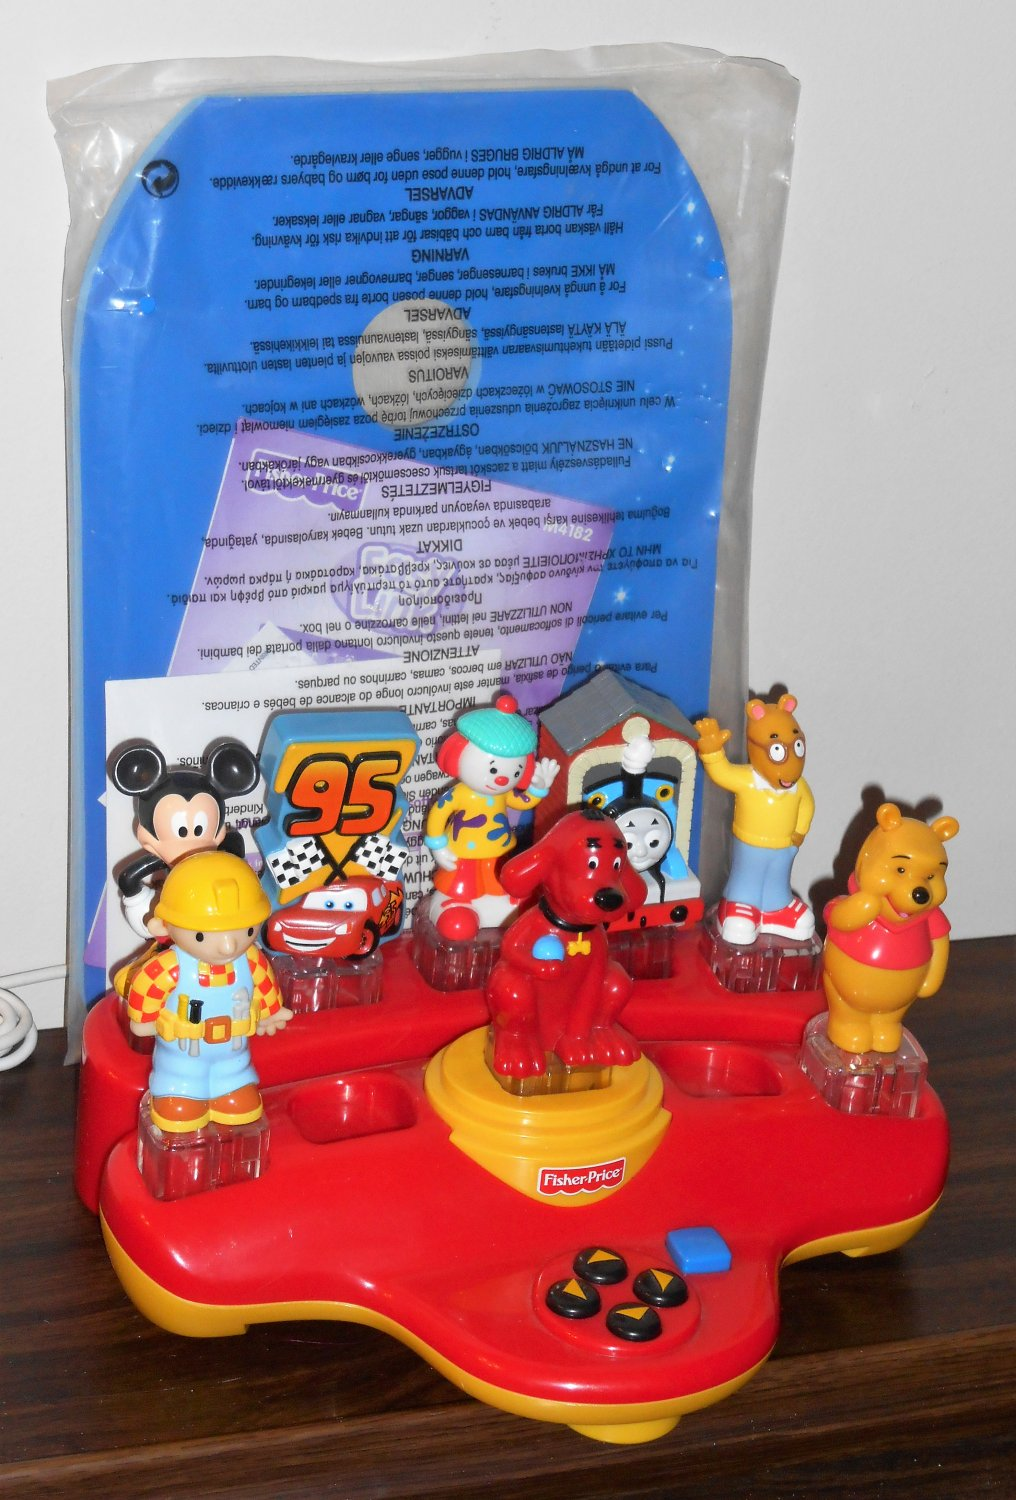 Fisher Price Easy Link Internet Launch Pad L6367 Red Base Mickey Mouse Thomas Tank Clifford Arthur